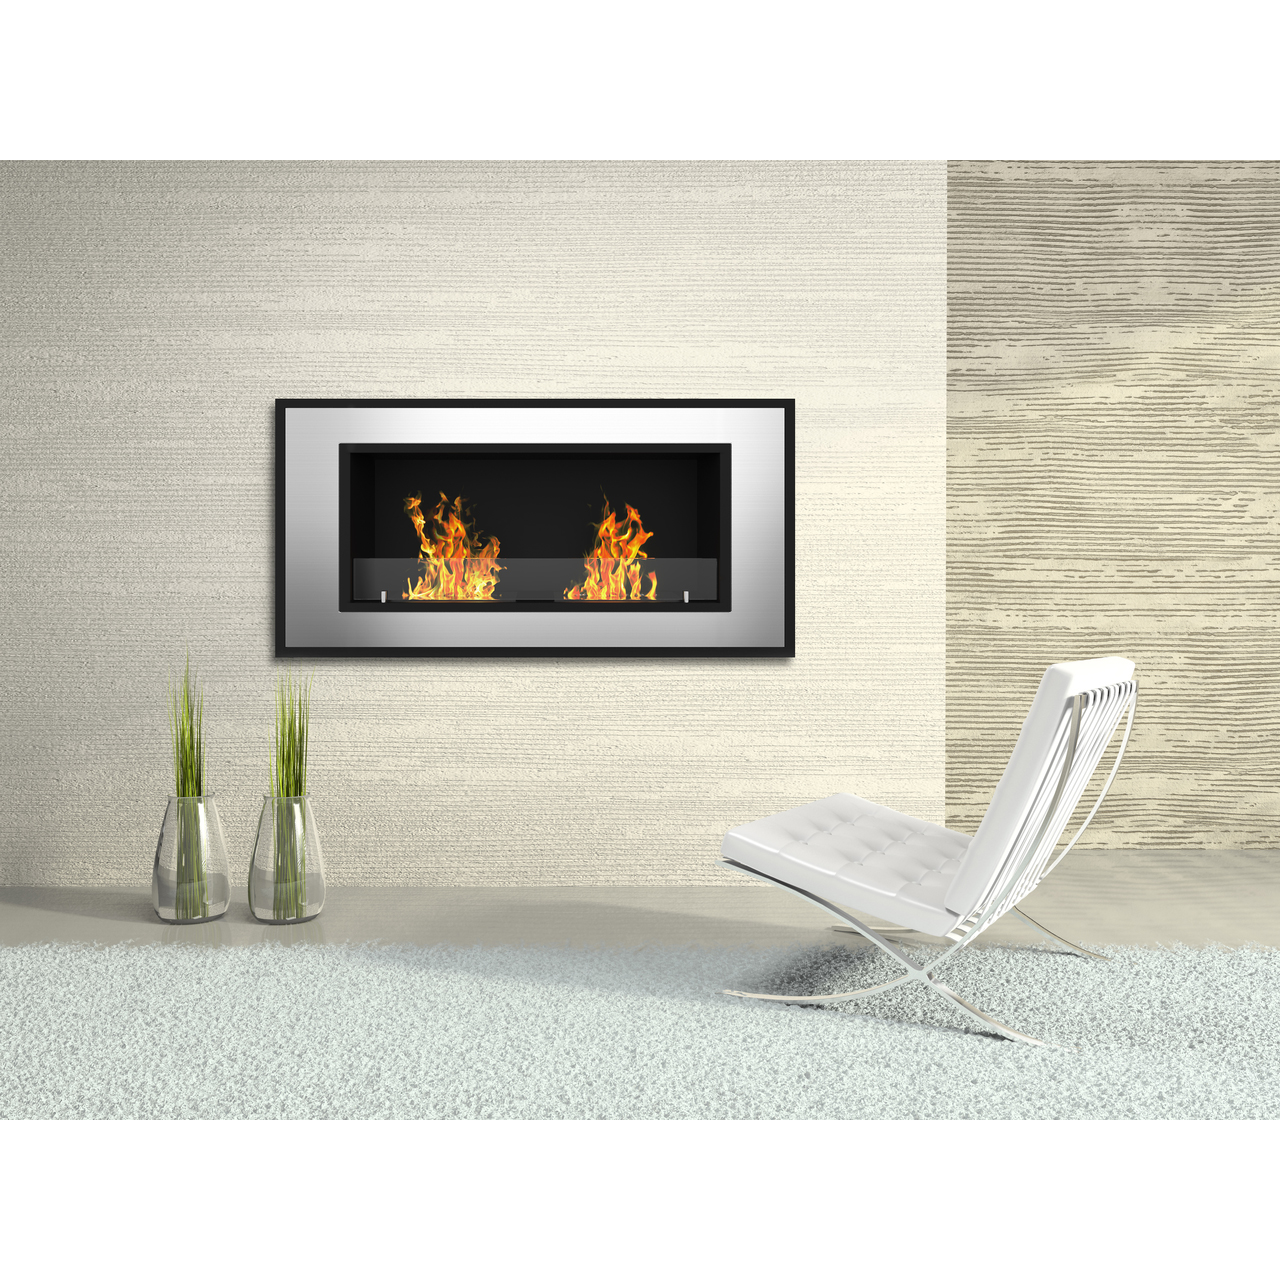 Brooks 47 Inch Ventless Built In Recessed Bio Ethanol Wall